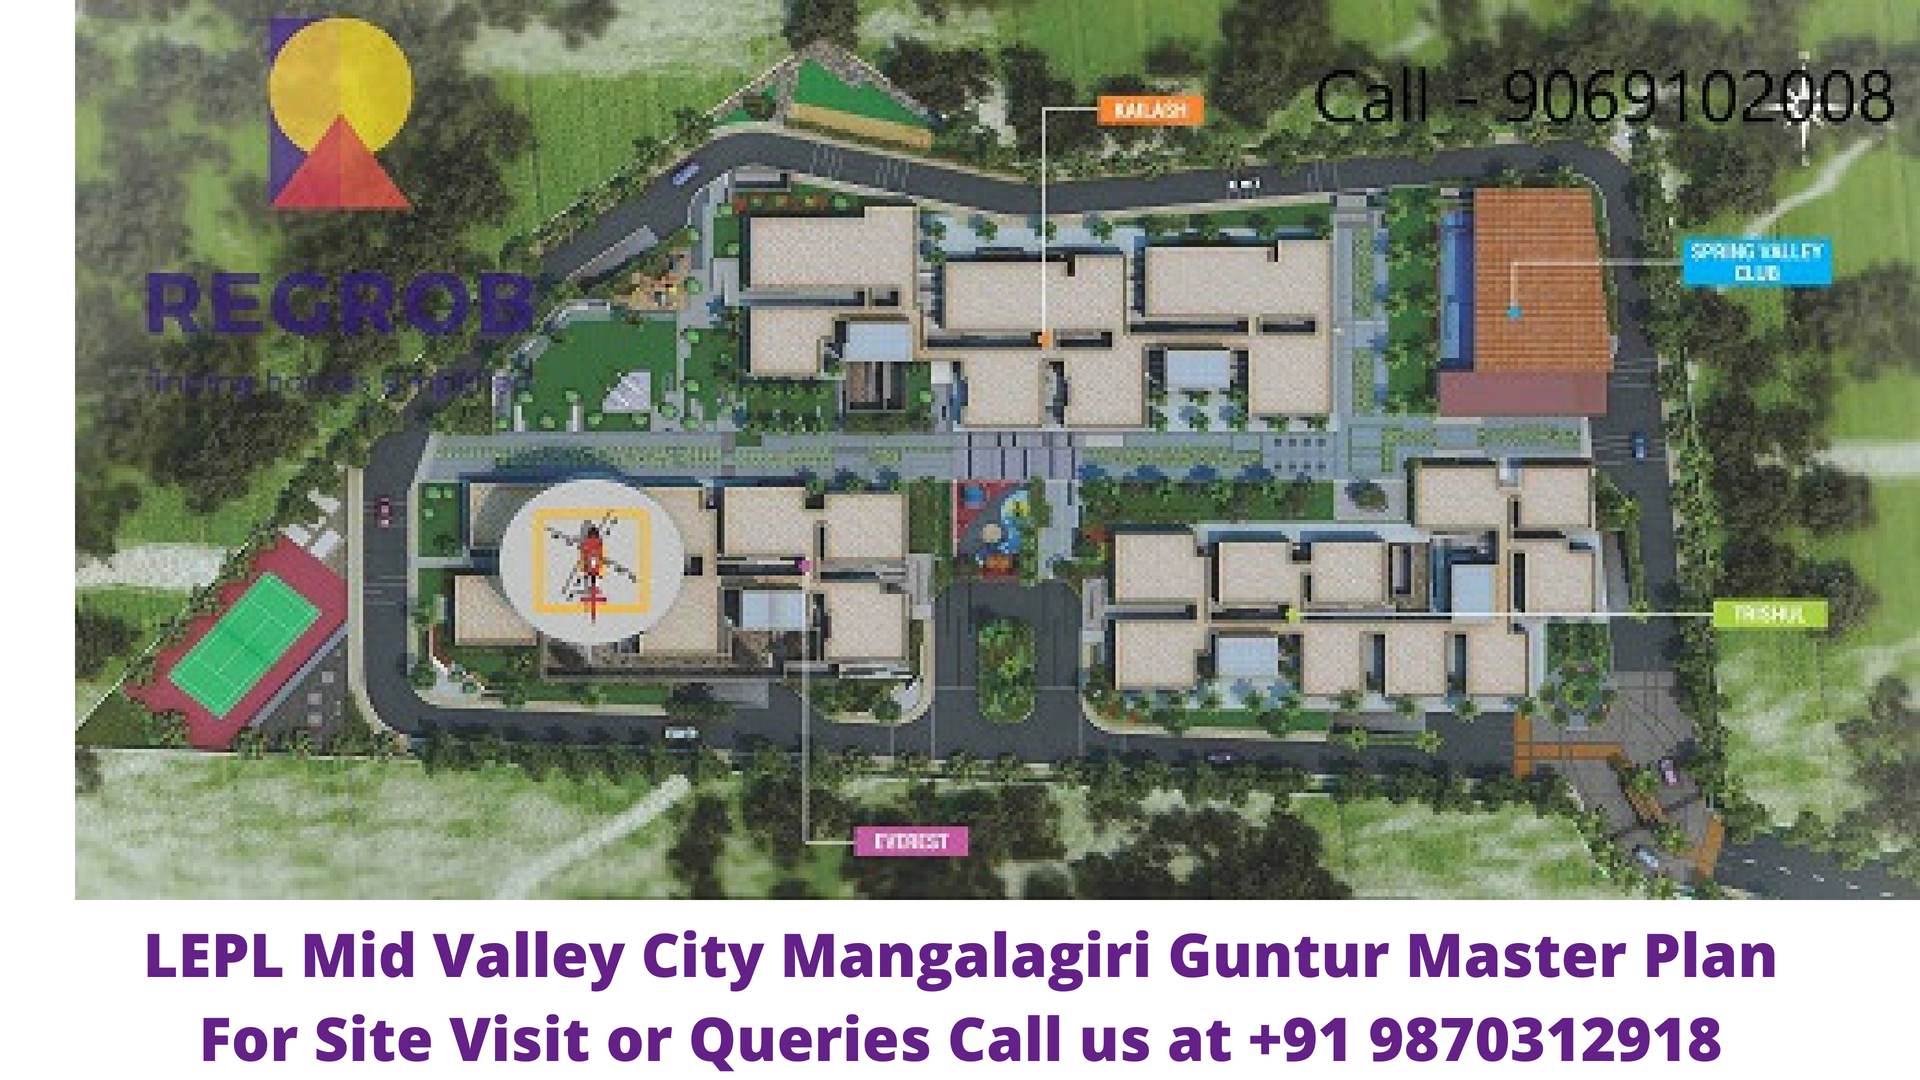 LEPL Mid Valley City Mangalagiri Guntur